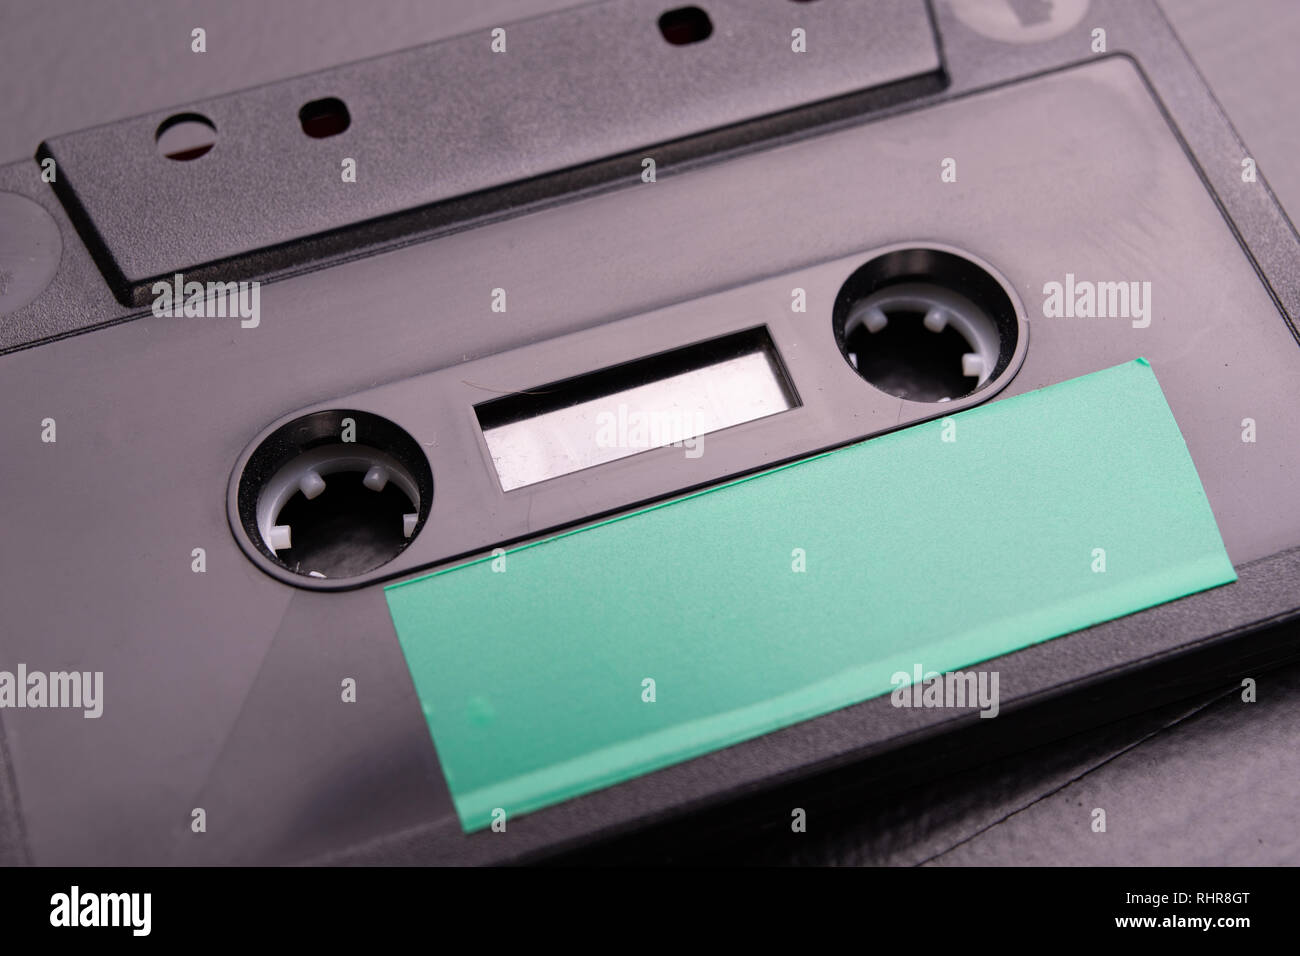 Audio cassette with space for text entry. Cassette without description. Dark background. - Stock Image